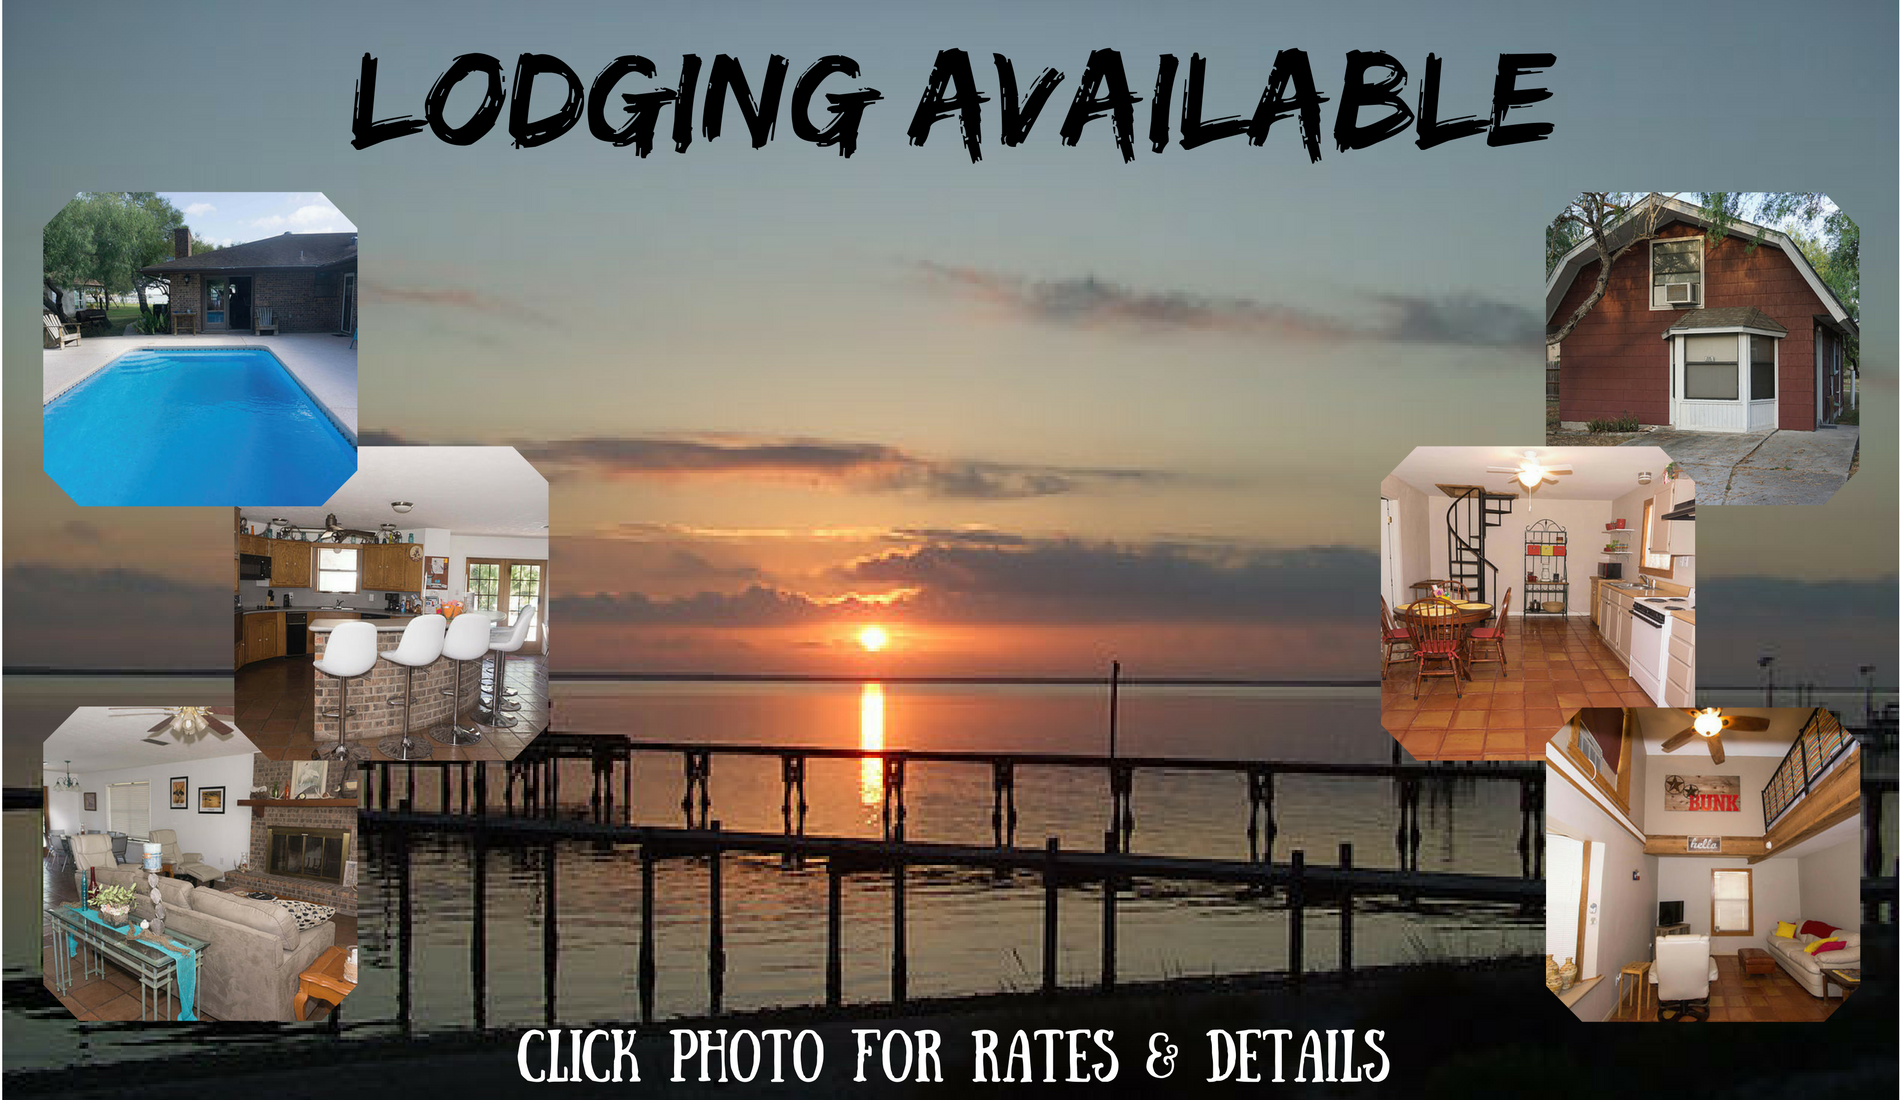 Lodging Avail